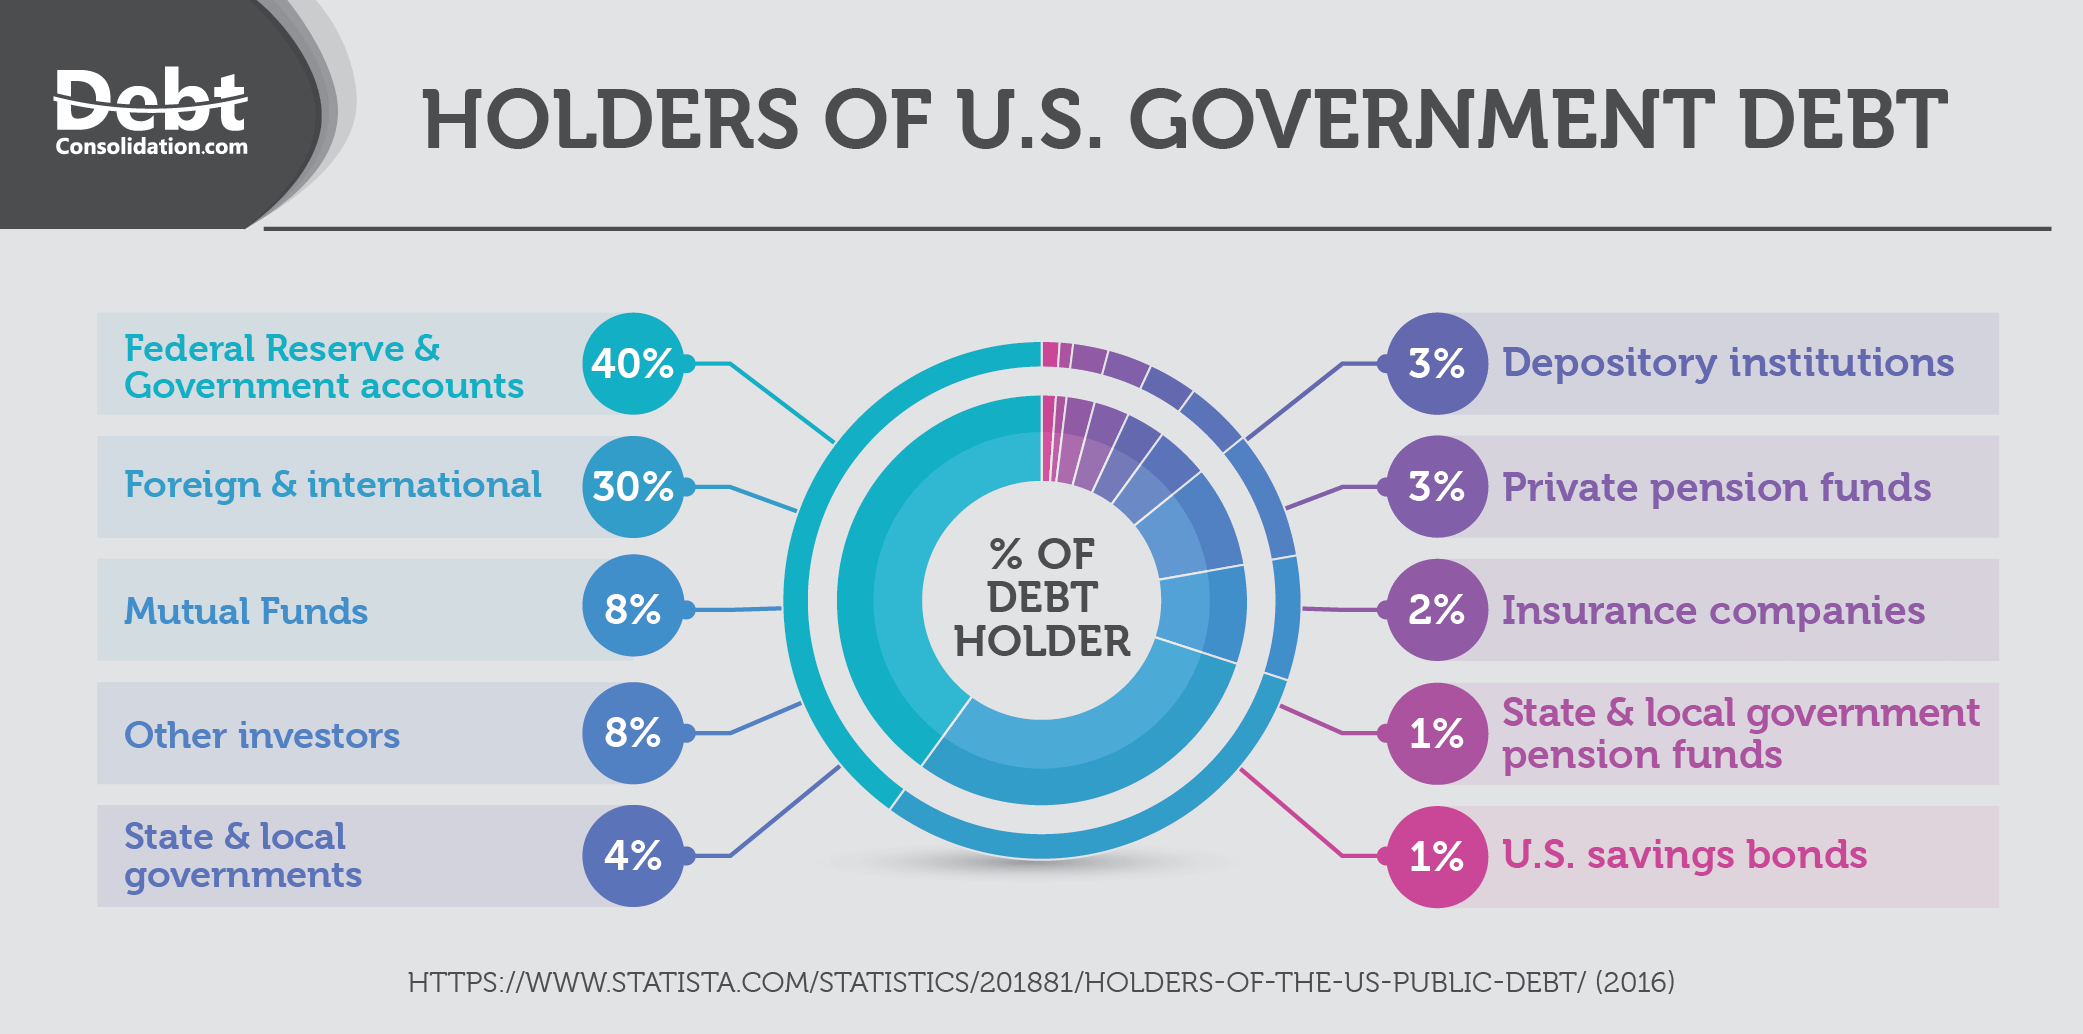 Holders of U.S. Government Debt